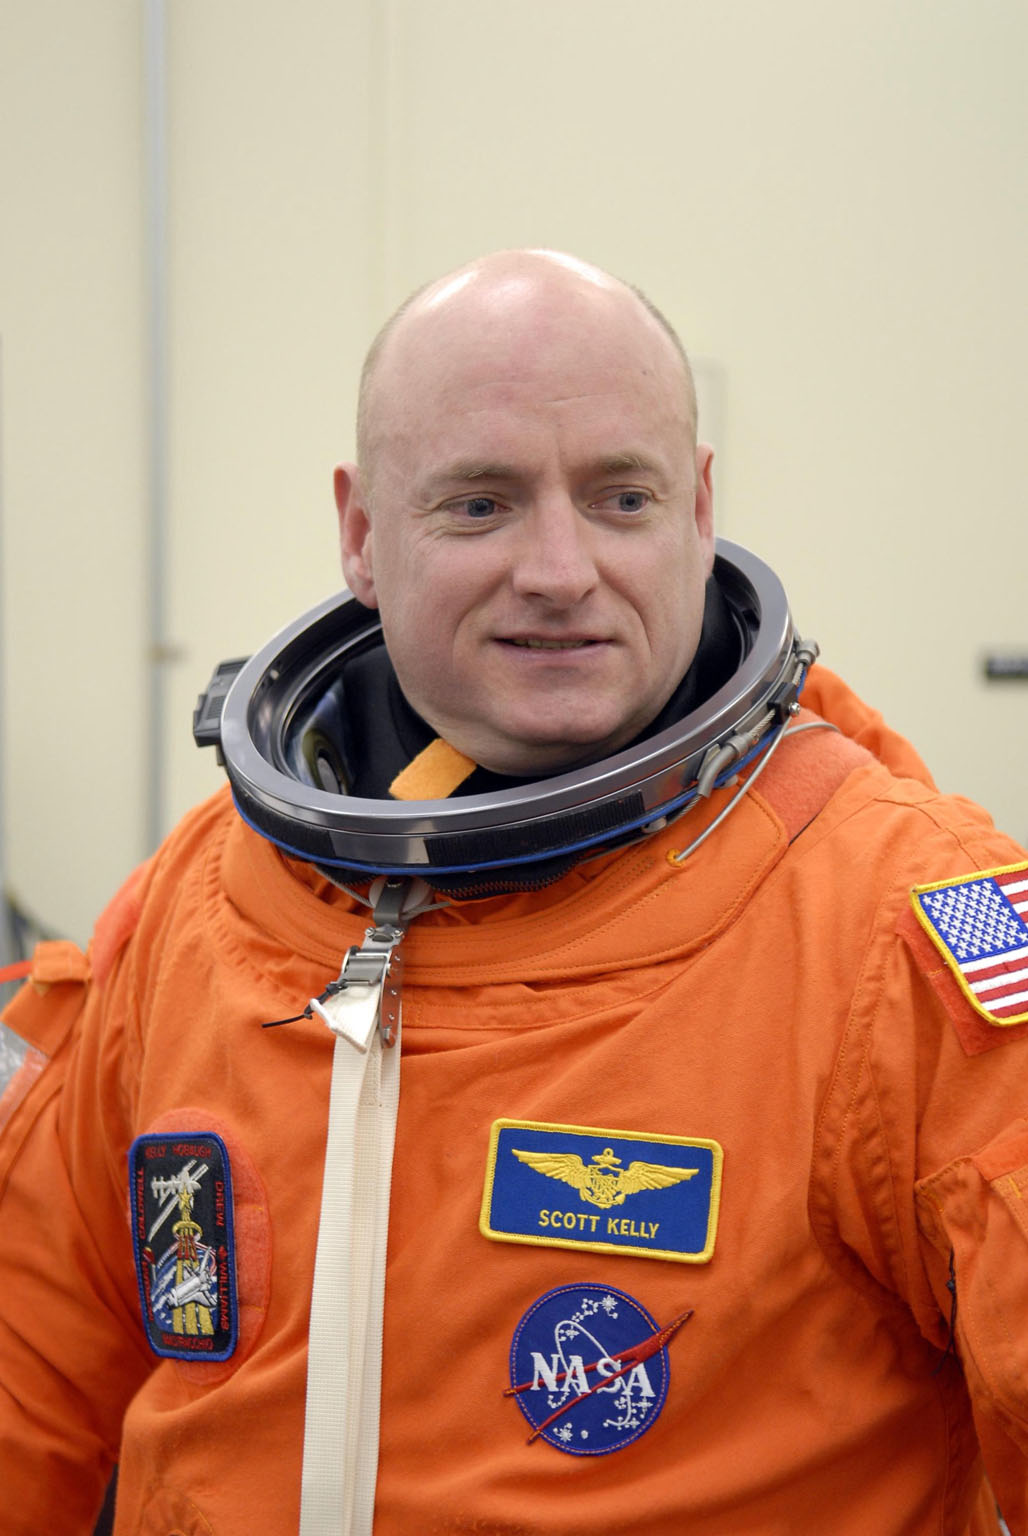 KENNEDY SPACE CENTER, FLA. -- In the Operations and Checkout Building, STS-118 Commander Scott Kelly dons his launch and entry suit for launch aboard Space Shuttle Endeavour. This is Kelly's second spaceflight. The STS-118 mission is the 22nd shuttle flight to the International Space Station. It will continue space station construction by delivering a third starboard truss segment, S5, and other payloads such as the SPACEHAB module and the external stowage platform 3. The 11-day mission may be extended to as many as 14 depending on the test of the Station-to-Shuttle Power Transfer System that will allow the docked shuttle to draw electrical power from the station and extend its visits to the orbiting lab. NASA/Kim Shiflett